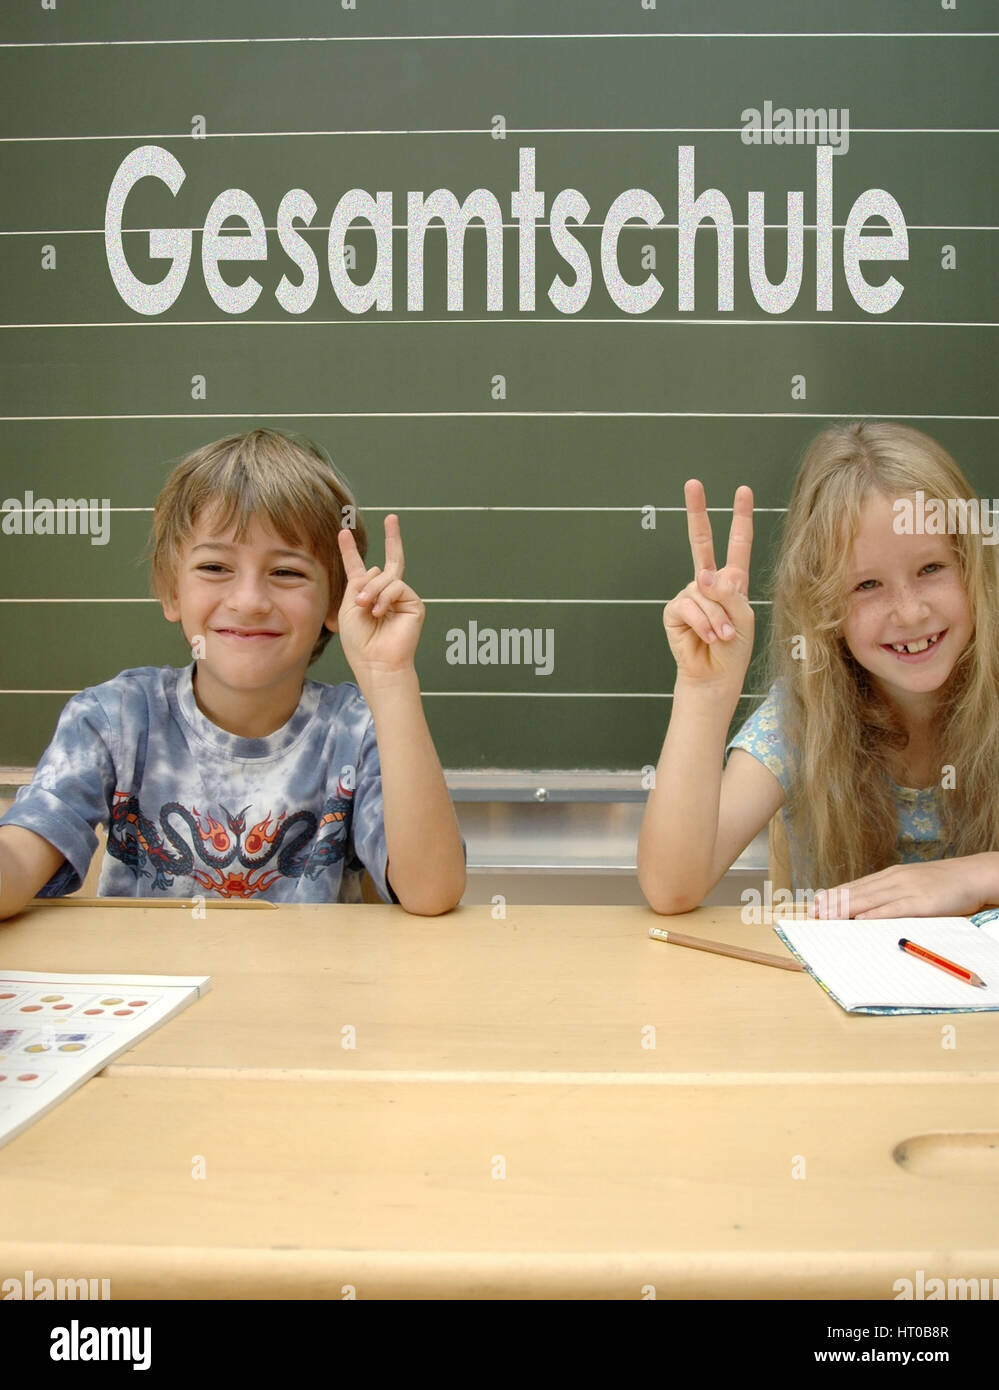 Optimistische Schueler, Gesamtschule - optimistic schoolkids, school without schoolbag, comprehensive school Stock Photo